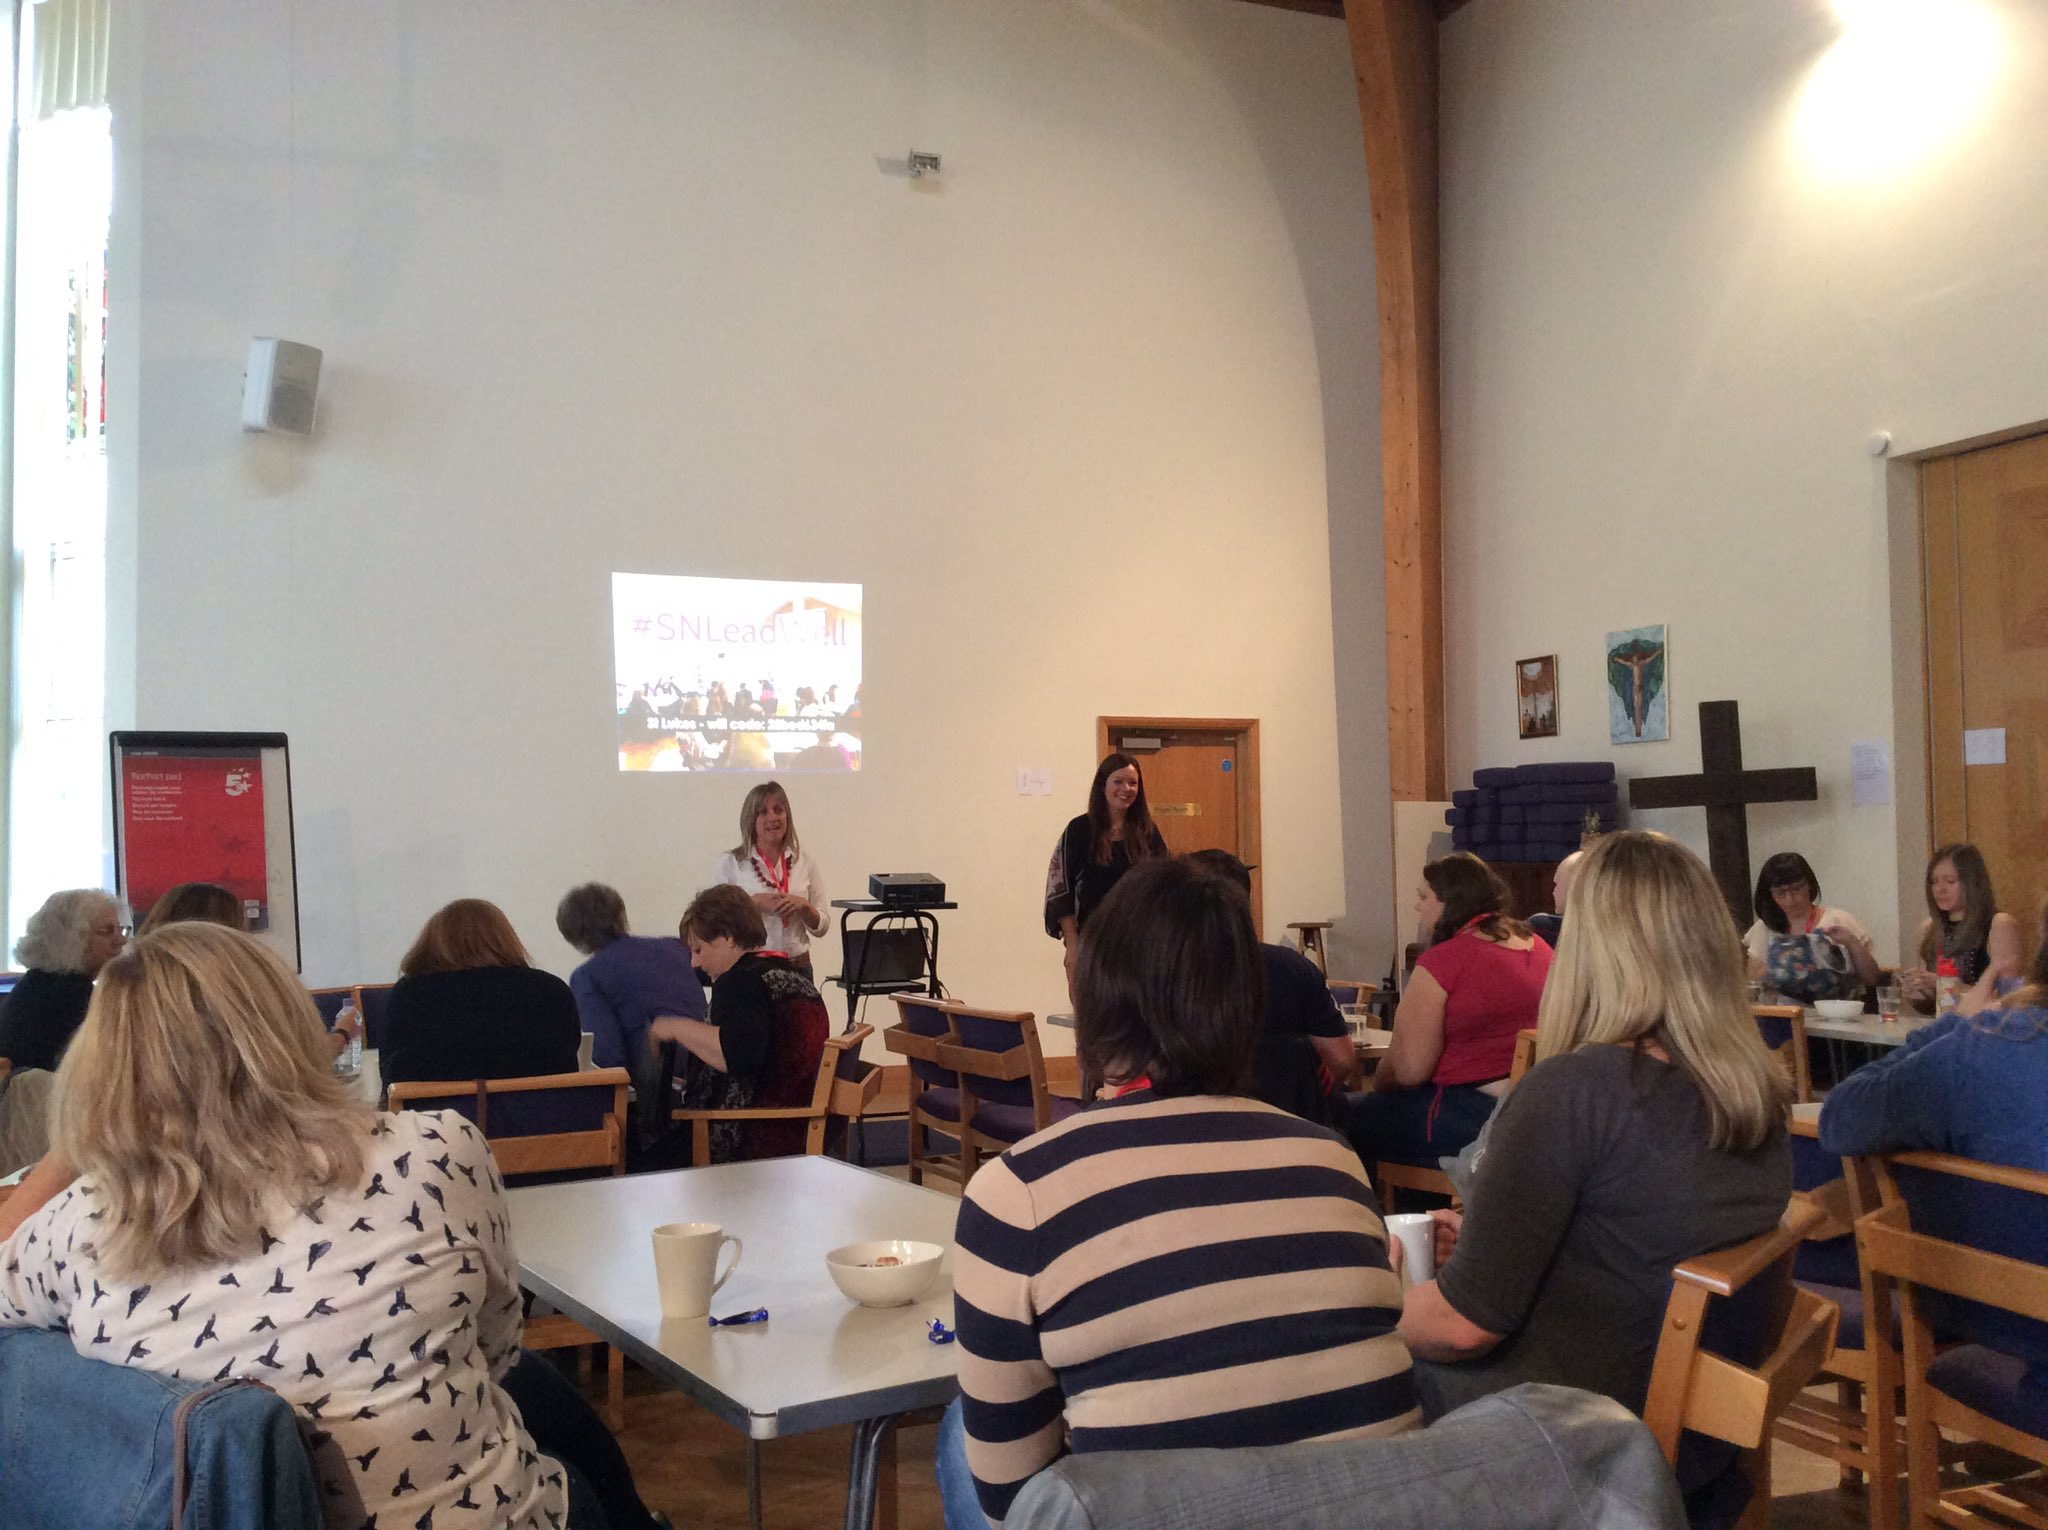 And we're off! Let's pray for a fruitful and inspiring day with @AnneCalver #SNLeadWell https://t.co/sqk6ykU815